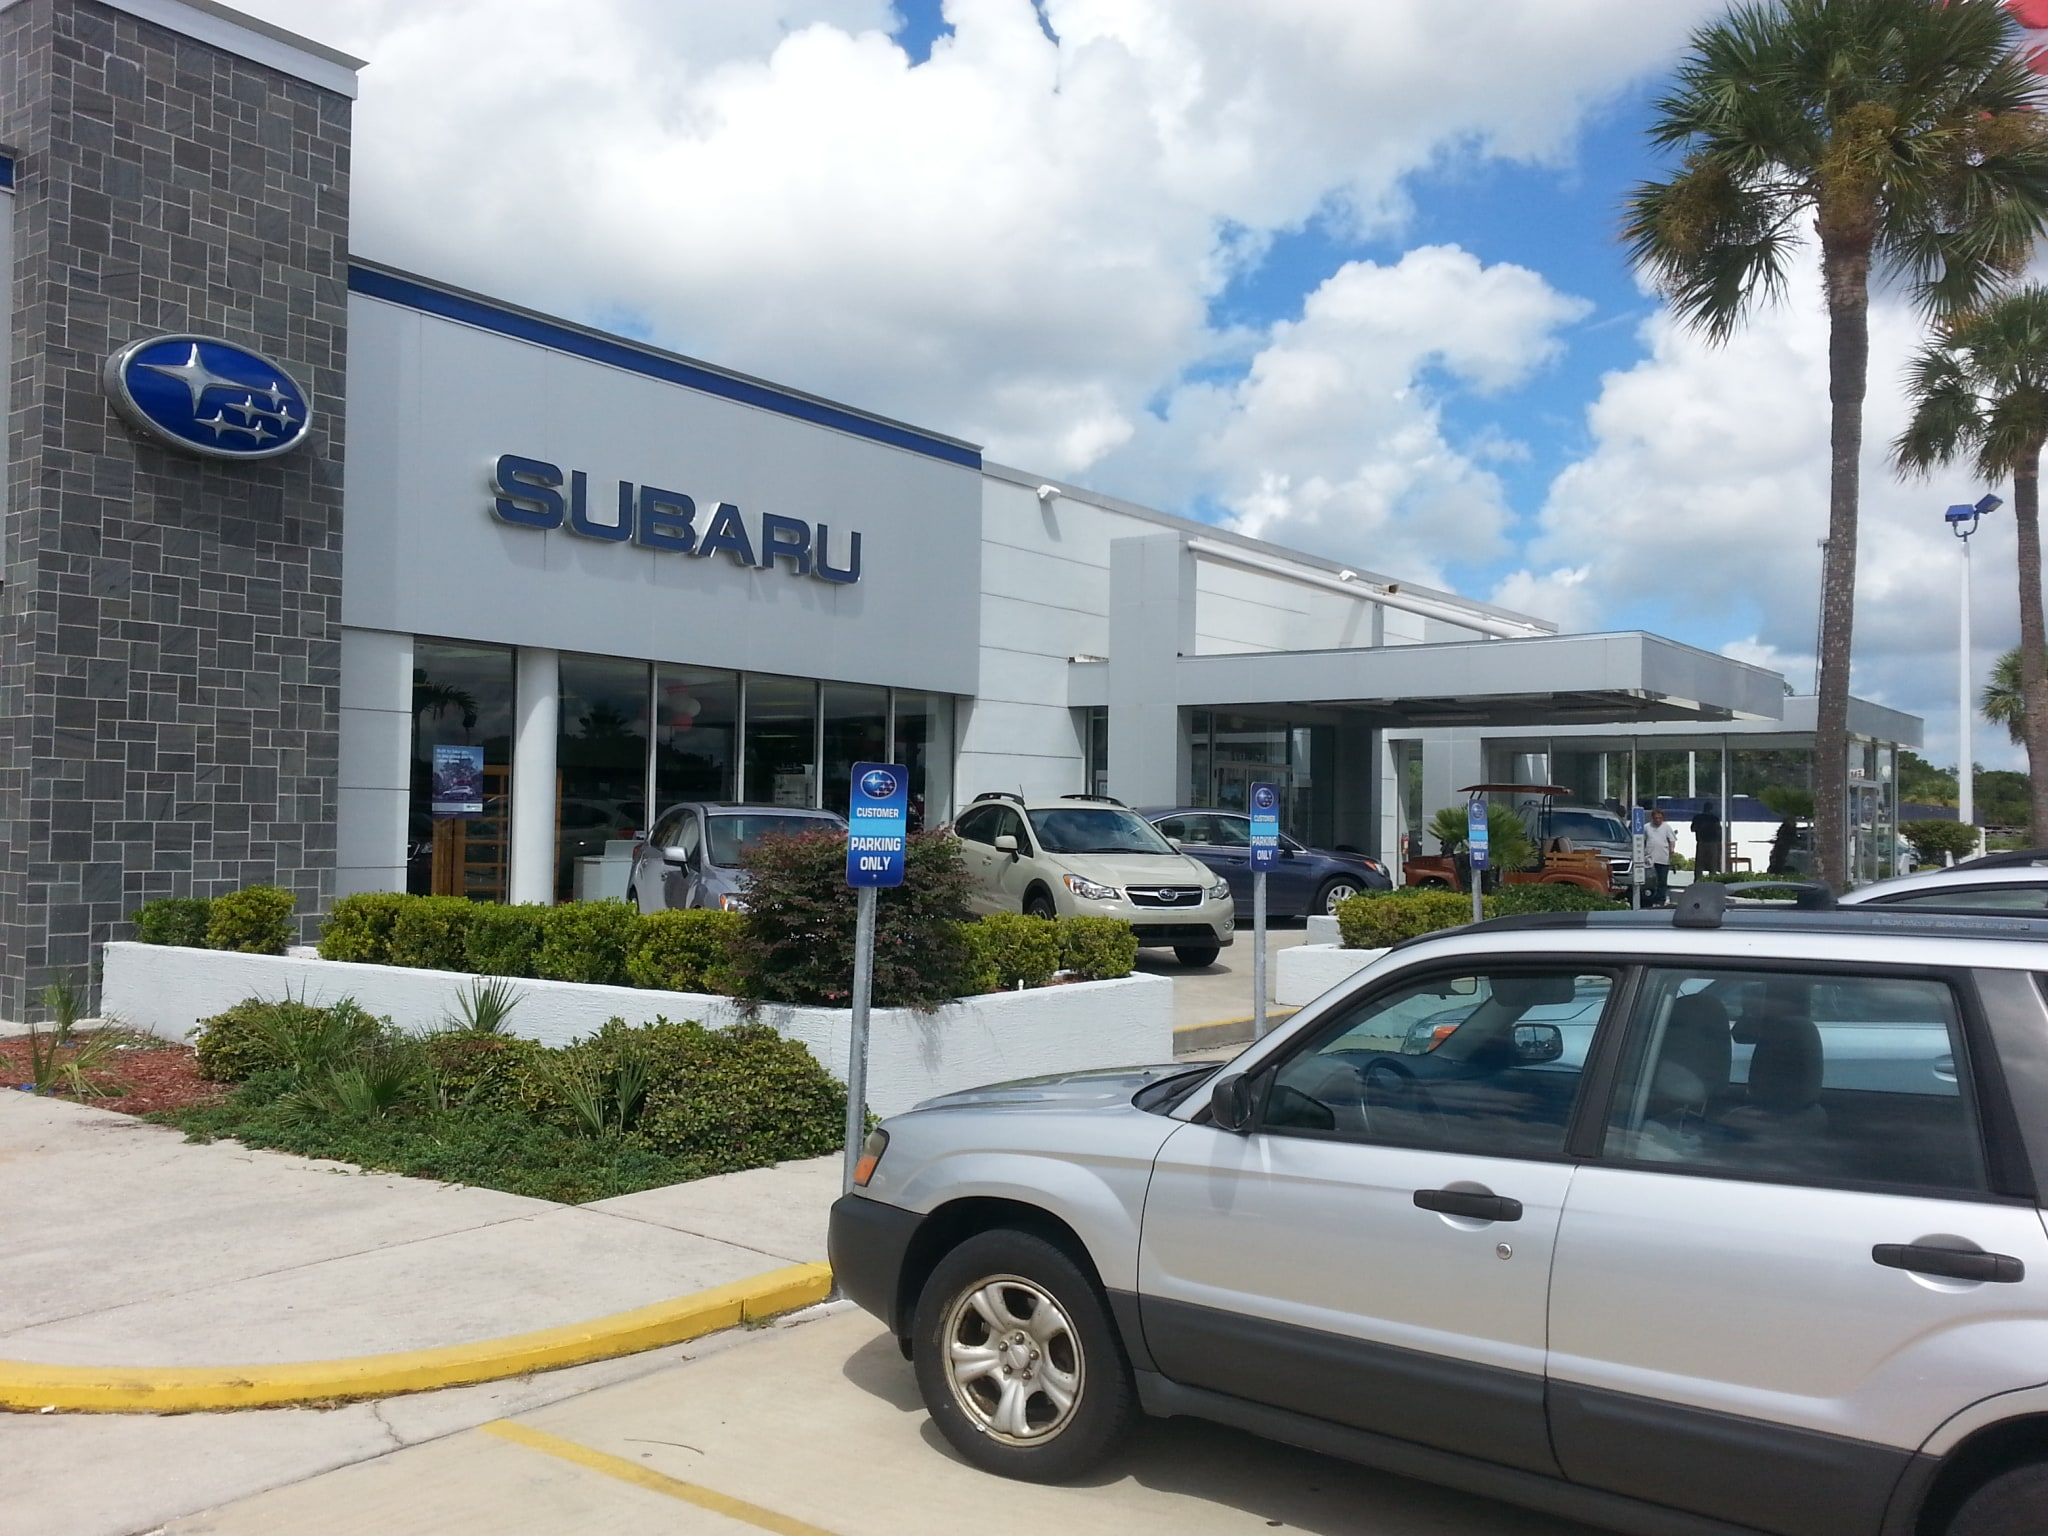 Attractive Subaru Of Port Richey, Located At 11613 U.S. Highway 19 N In Port Richey,  FL, Is Your Subaru Dealer For New And Used Subaru Vehicles.